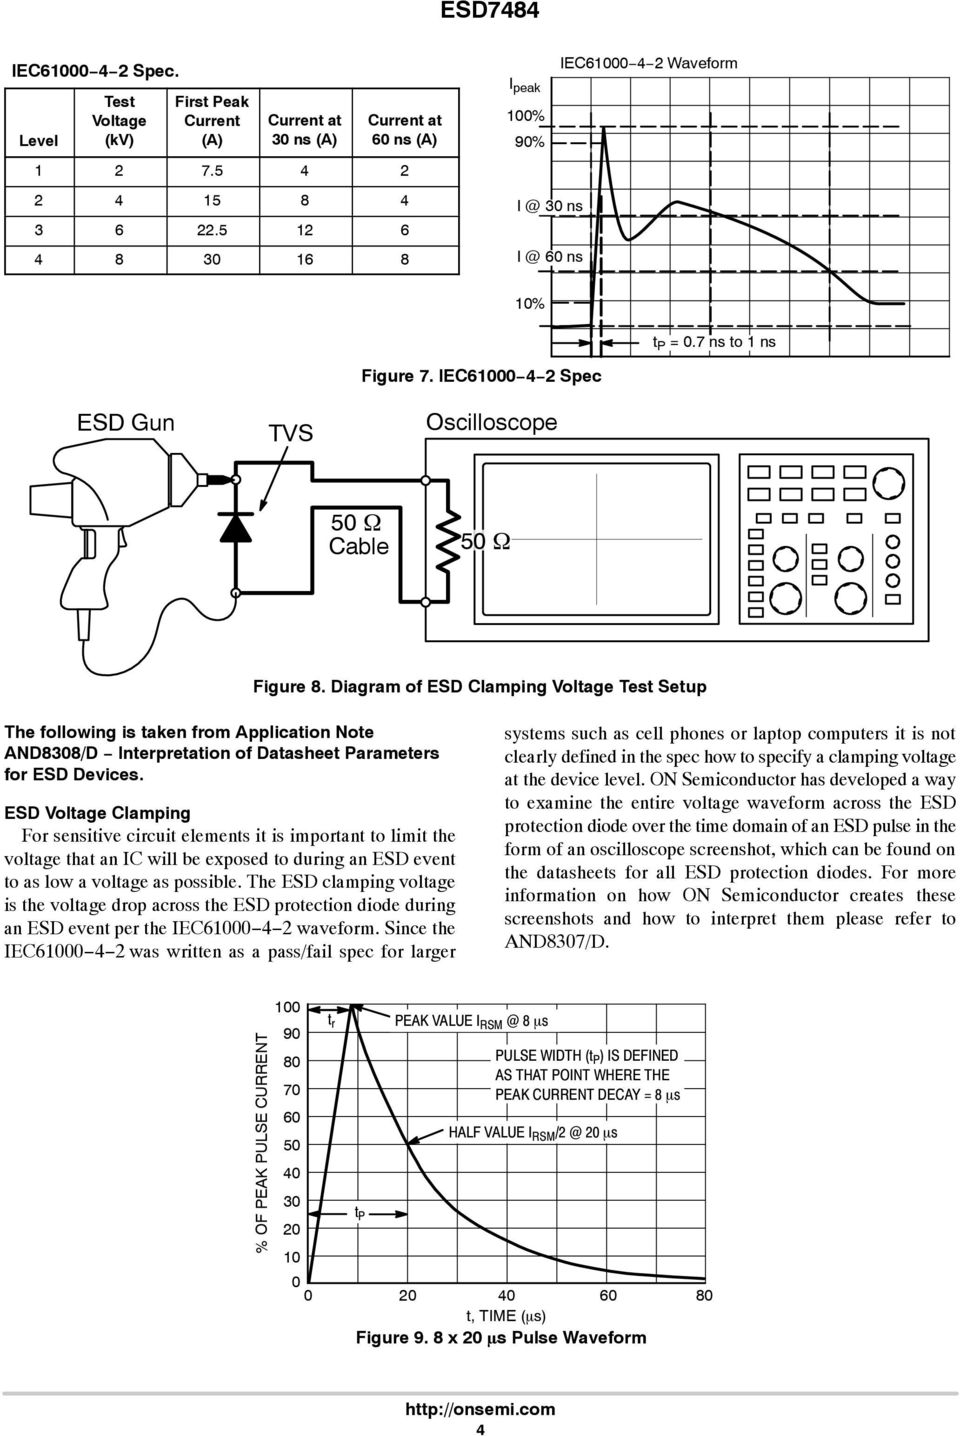 Diagram of ESD Clamping Voltage Test Setup The following is taken from Application Note AND808/D Interpretation of Datasheet Parameters for ESD Devices.